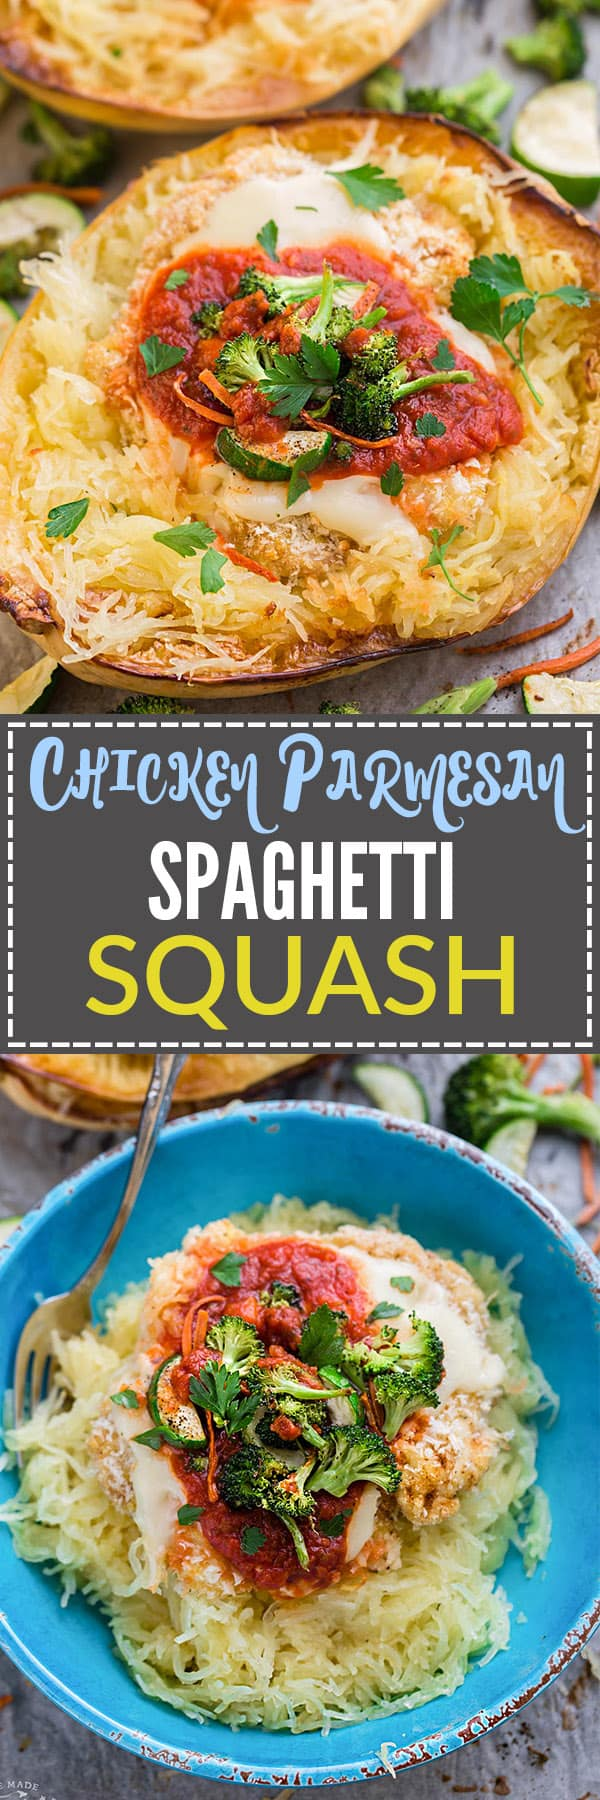 Chicken Parmesan Spaghetti Squash Bowls make the perfect easy one pan meal. Best of all, it's so easy to customize with your favorite veggies and takes just 15 minutes of prep time!